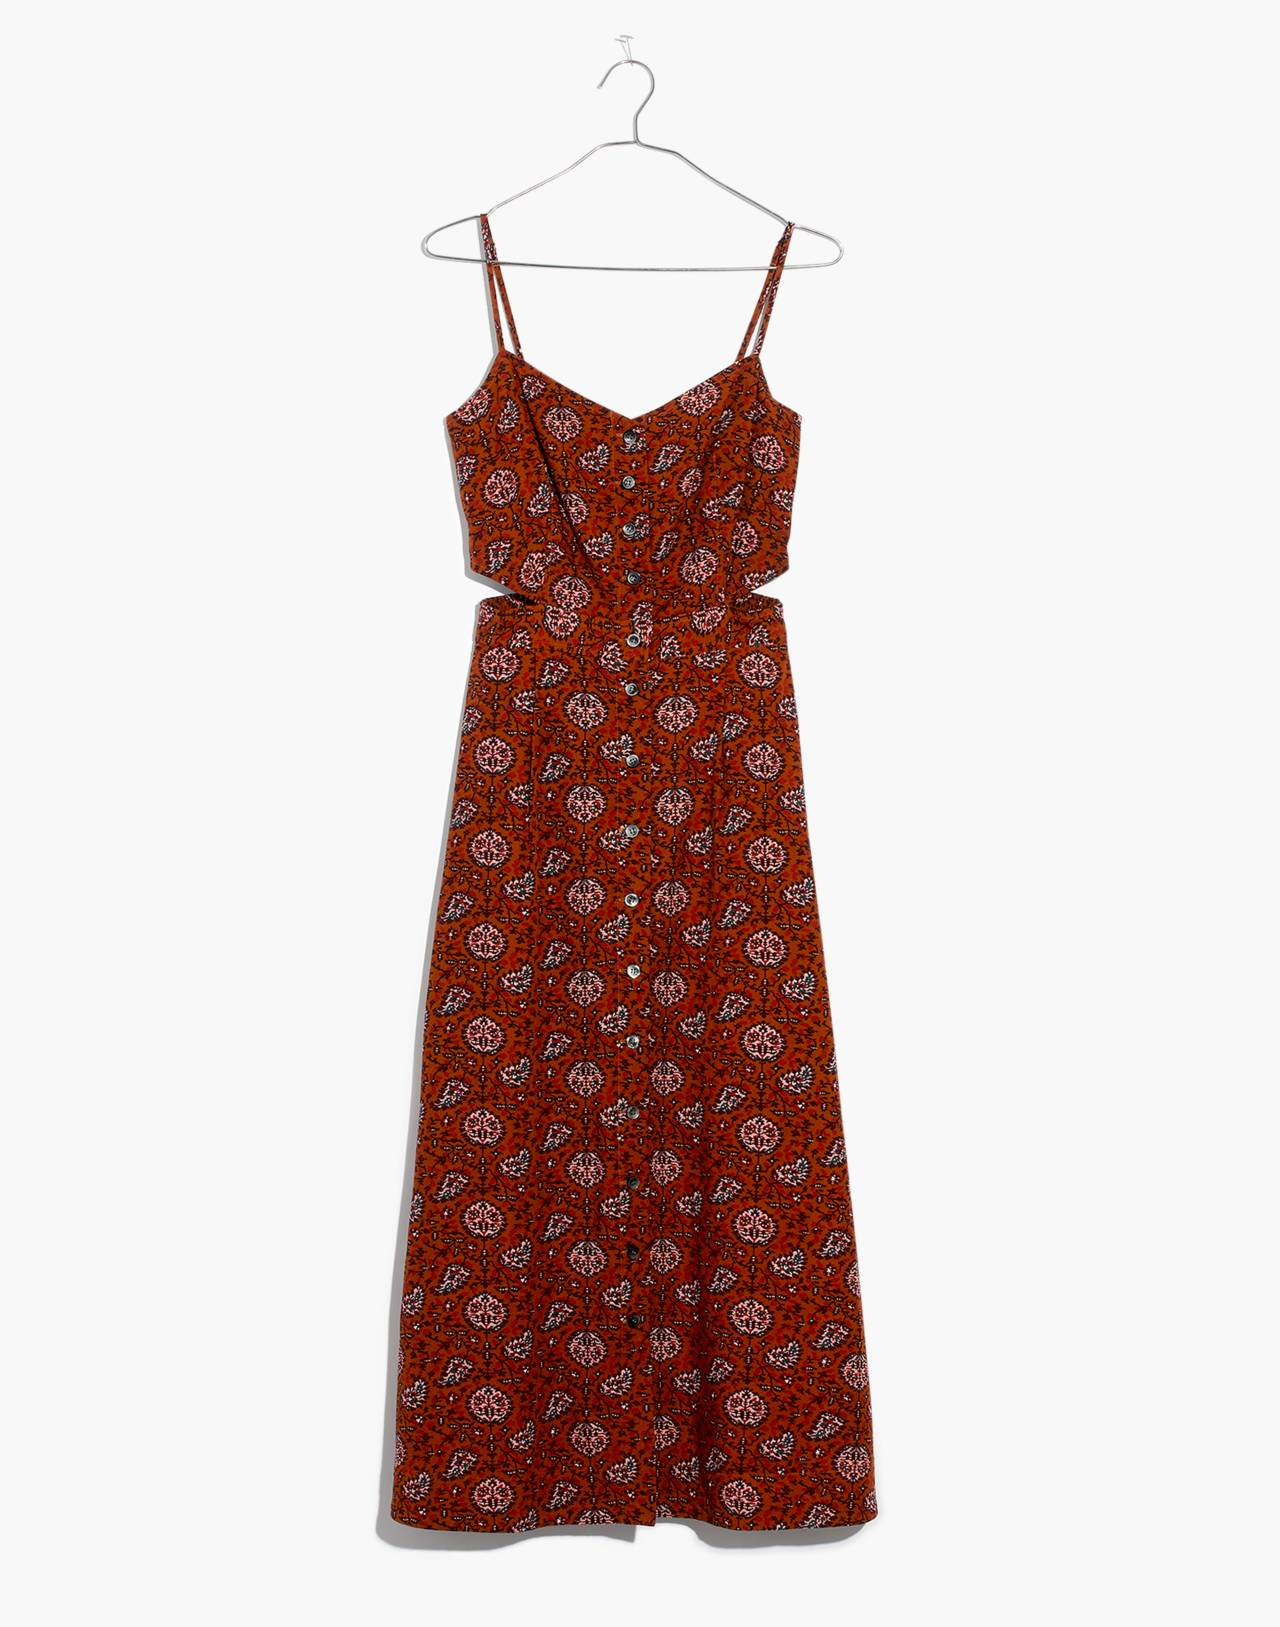 Cutout Cami Midi Dress in Warm Paisley in provincial burnt sienna image 4